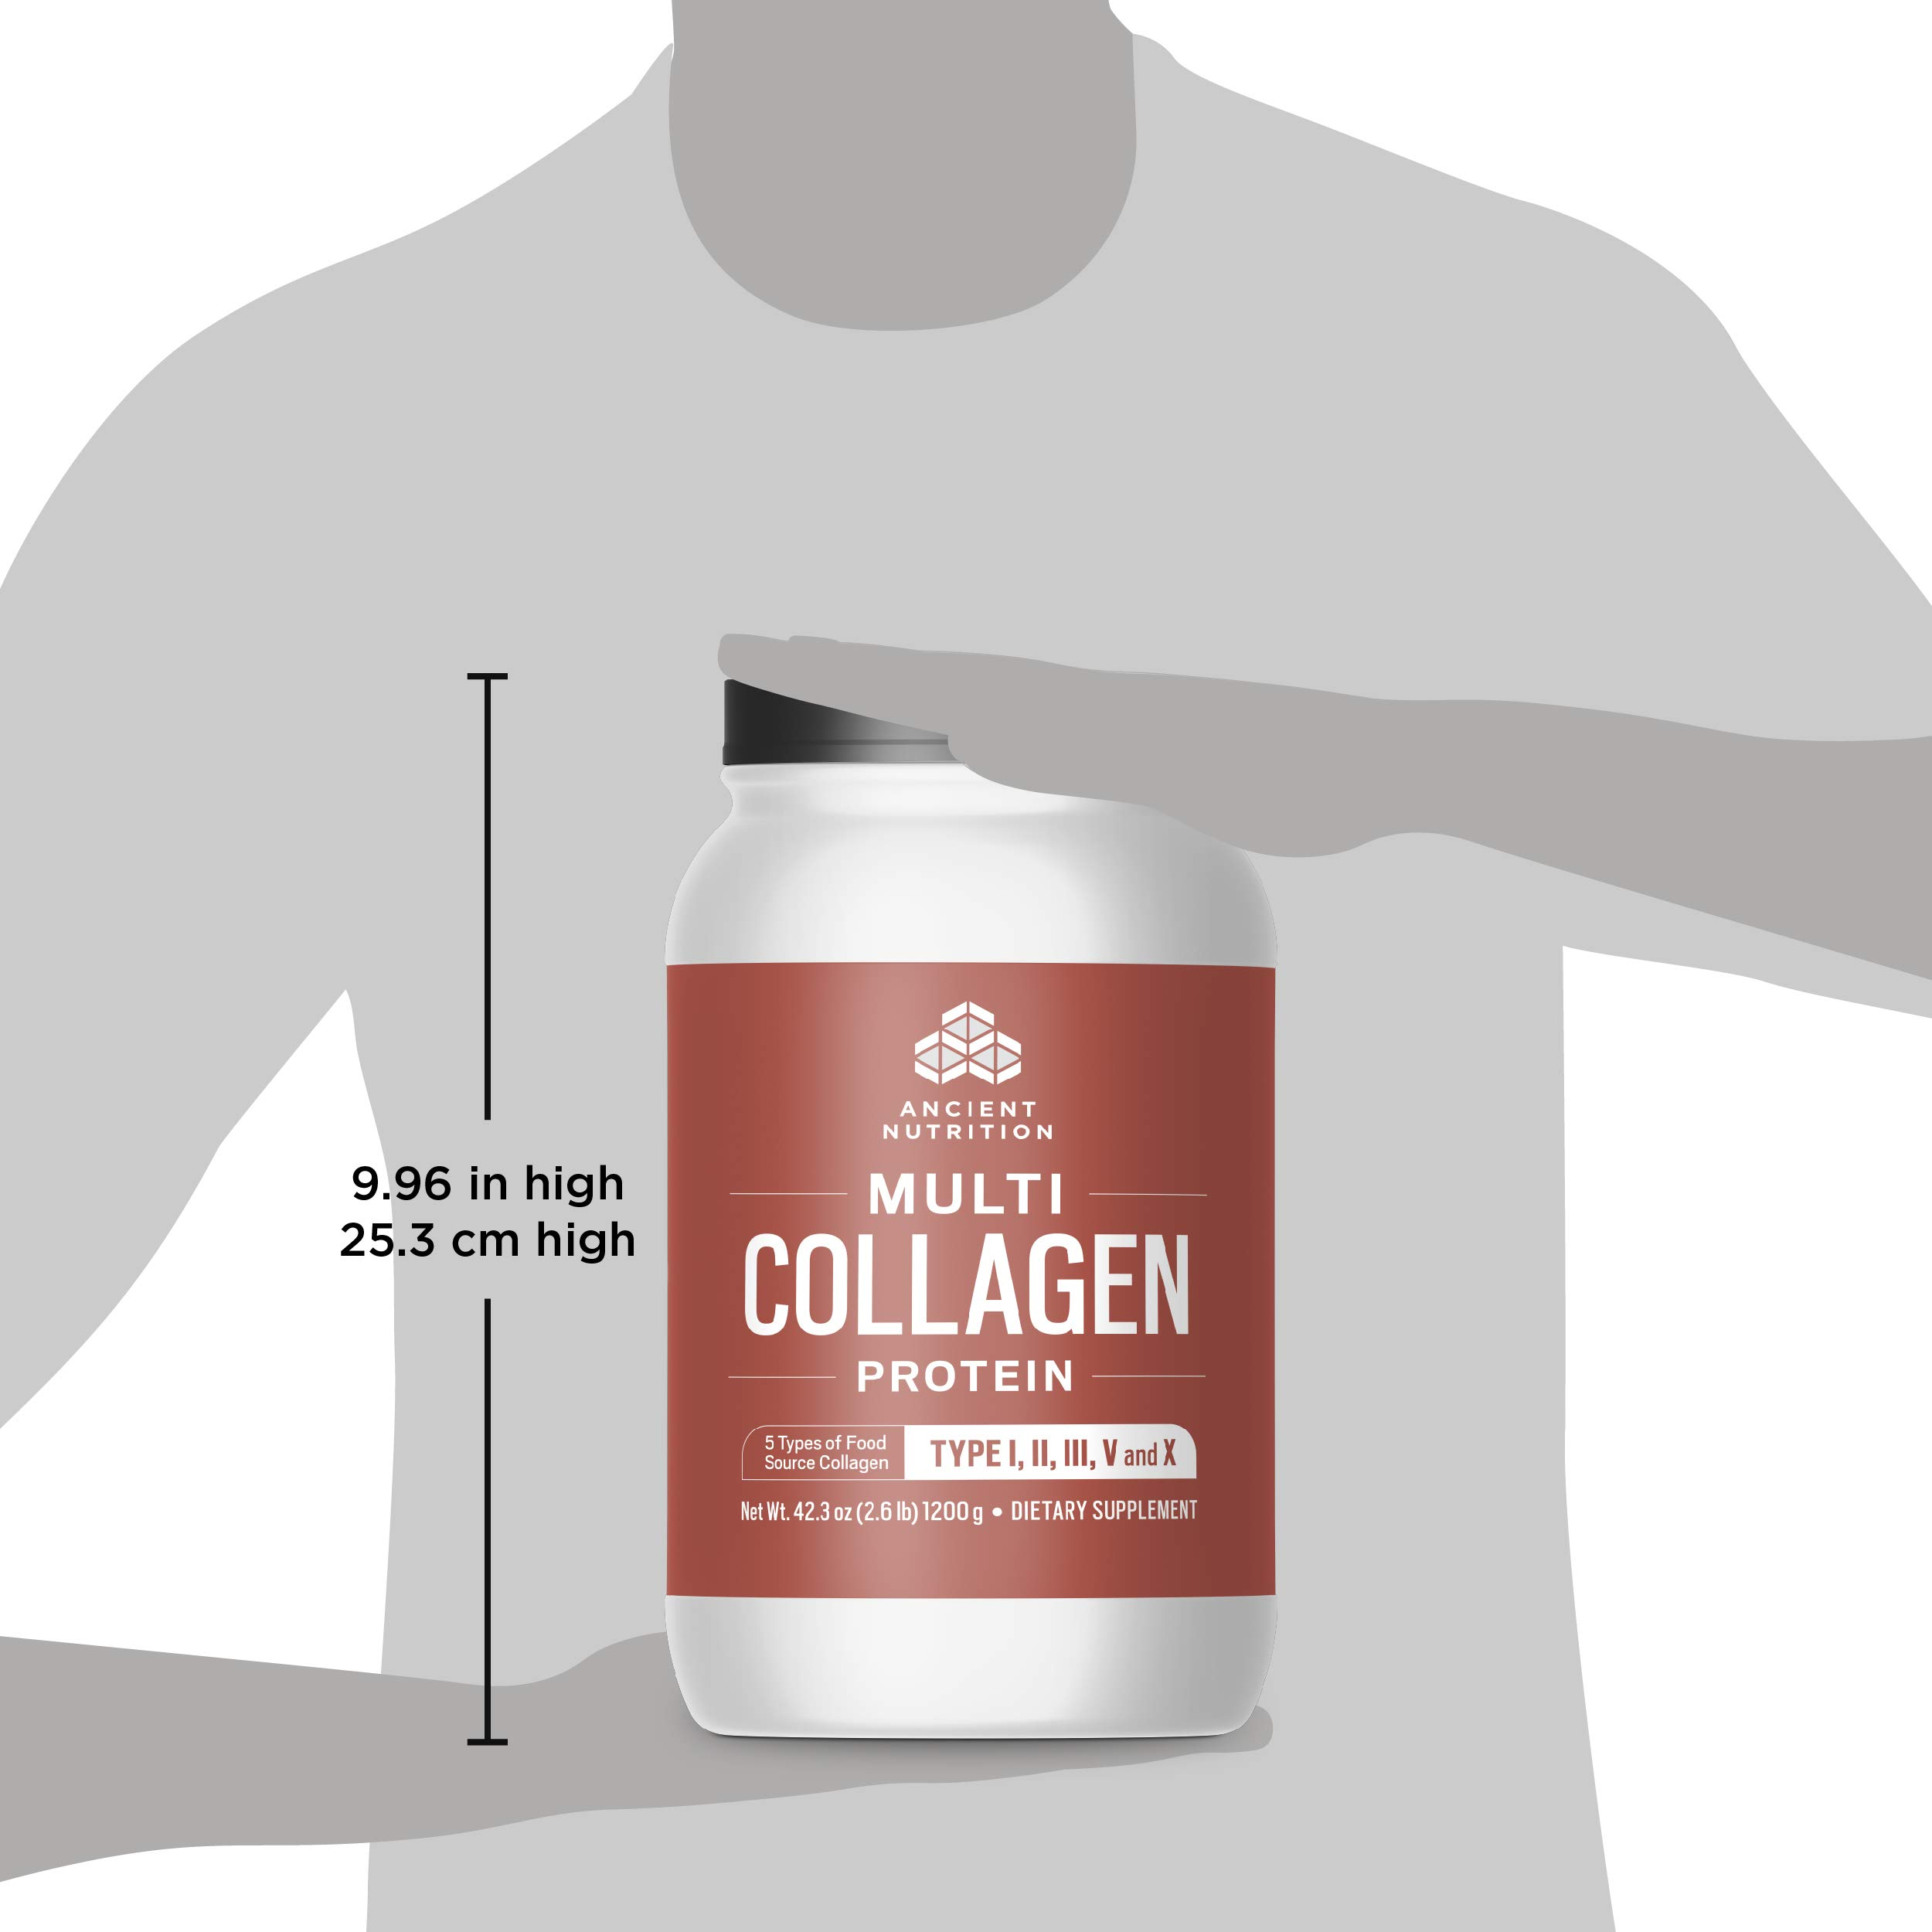 Ancient Nutrition Multi Collagen Protein Powder, 5 Types of Food Source Collagen, Type I, II, III, V and X, 42.3oz by Ancient Nutrition (Image #8)